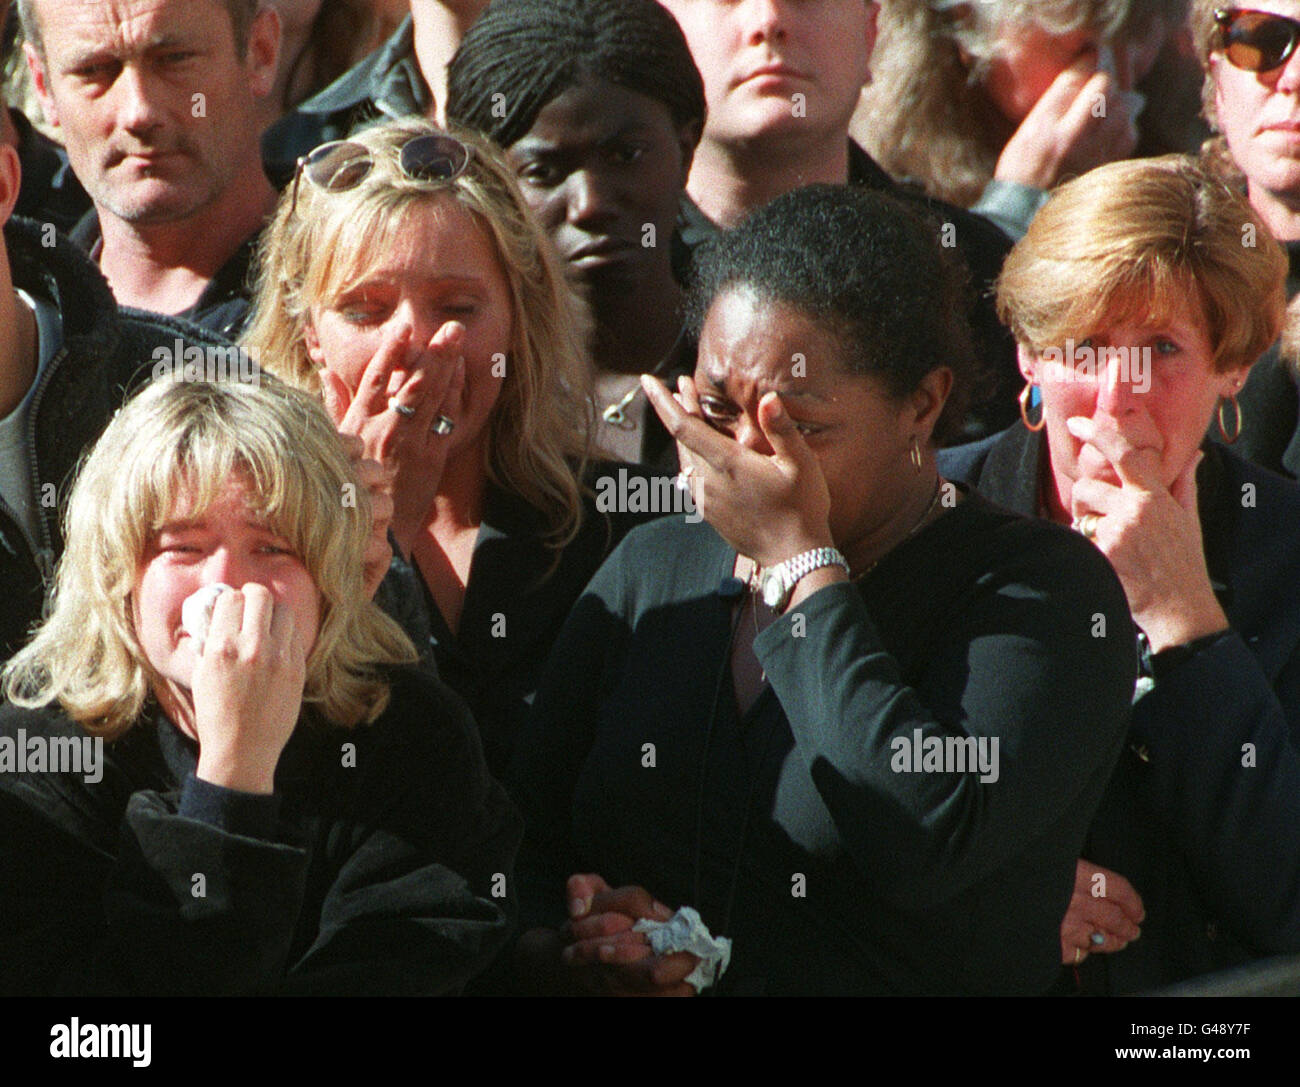 princess diana funeral high resolution stock photography and images alamy https www alamy com stock photo princess diana funeral westminster abbey london 105917827 html